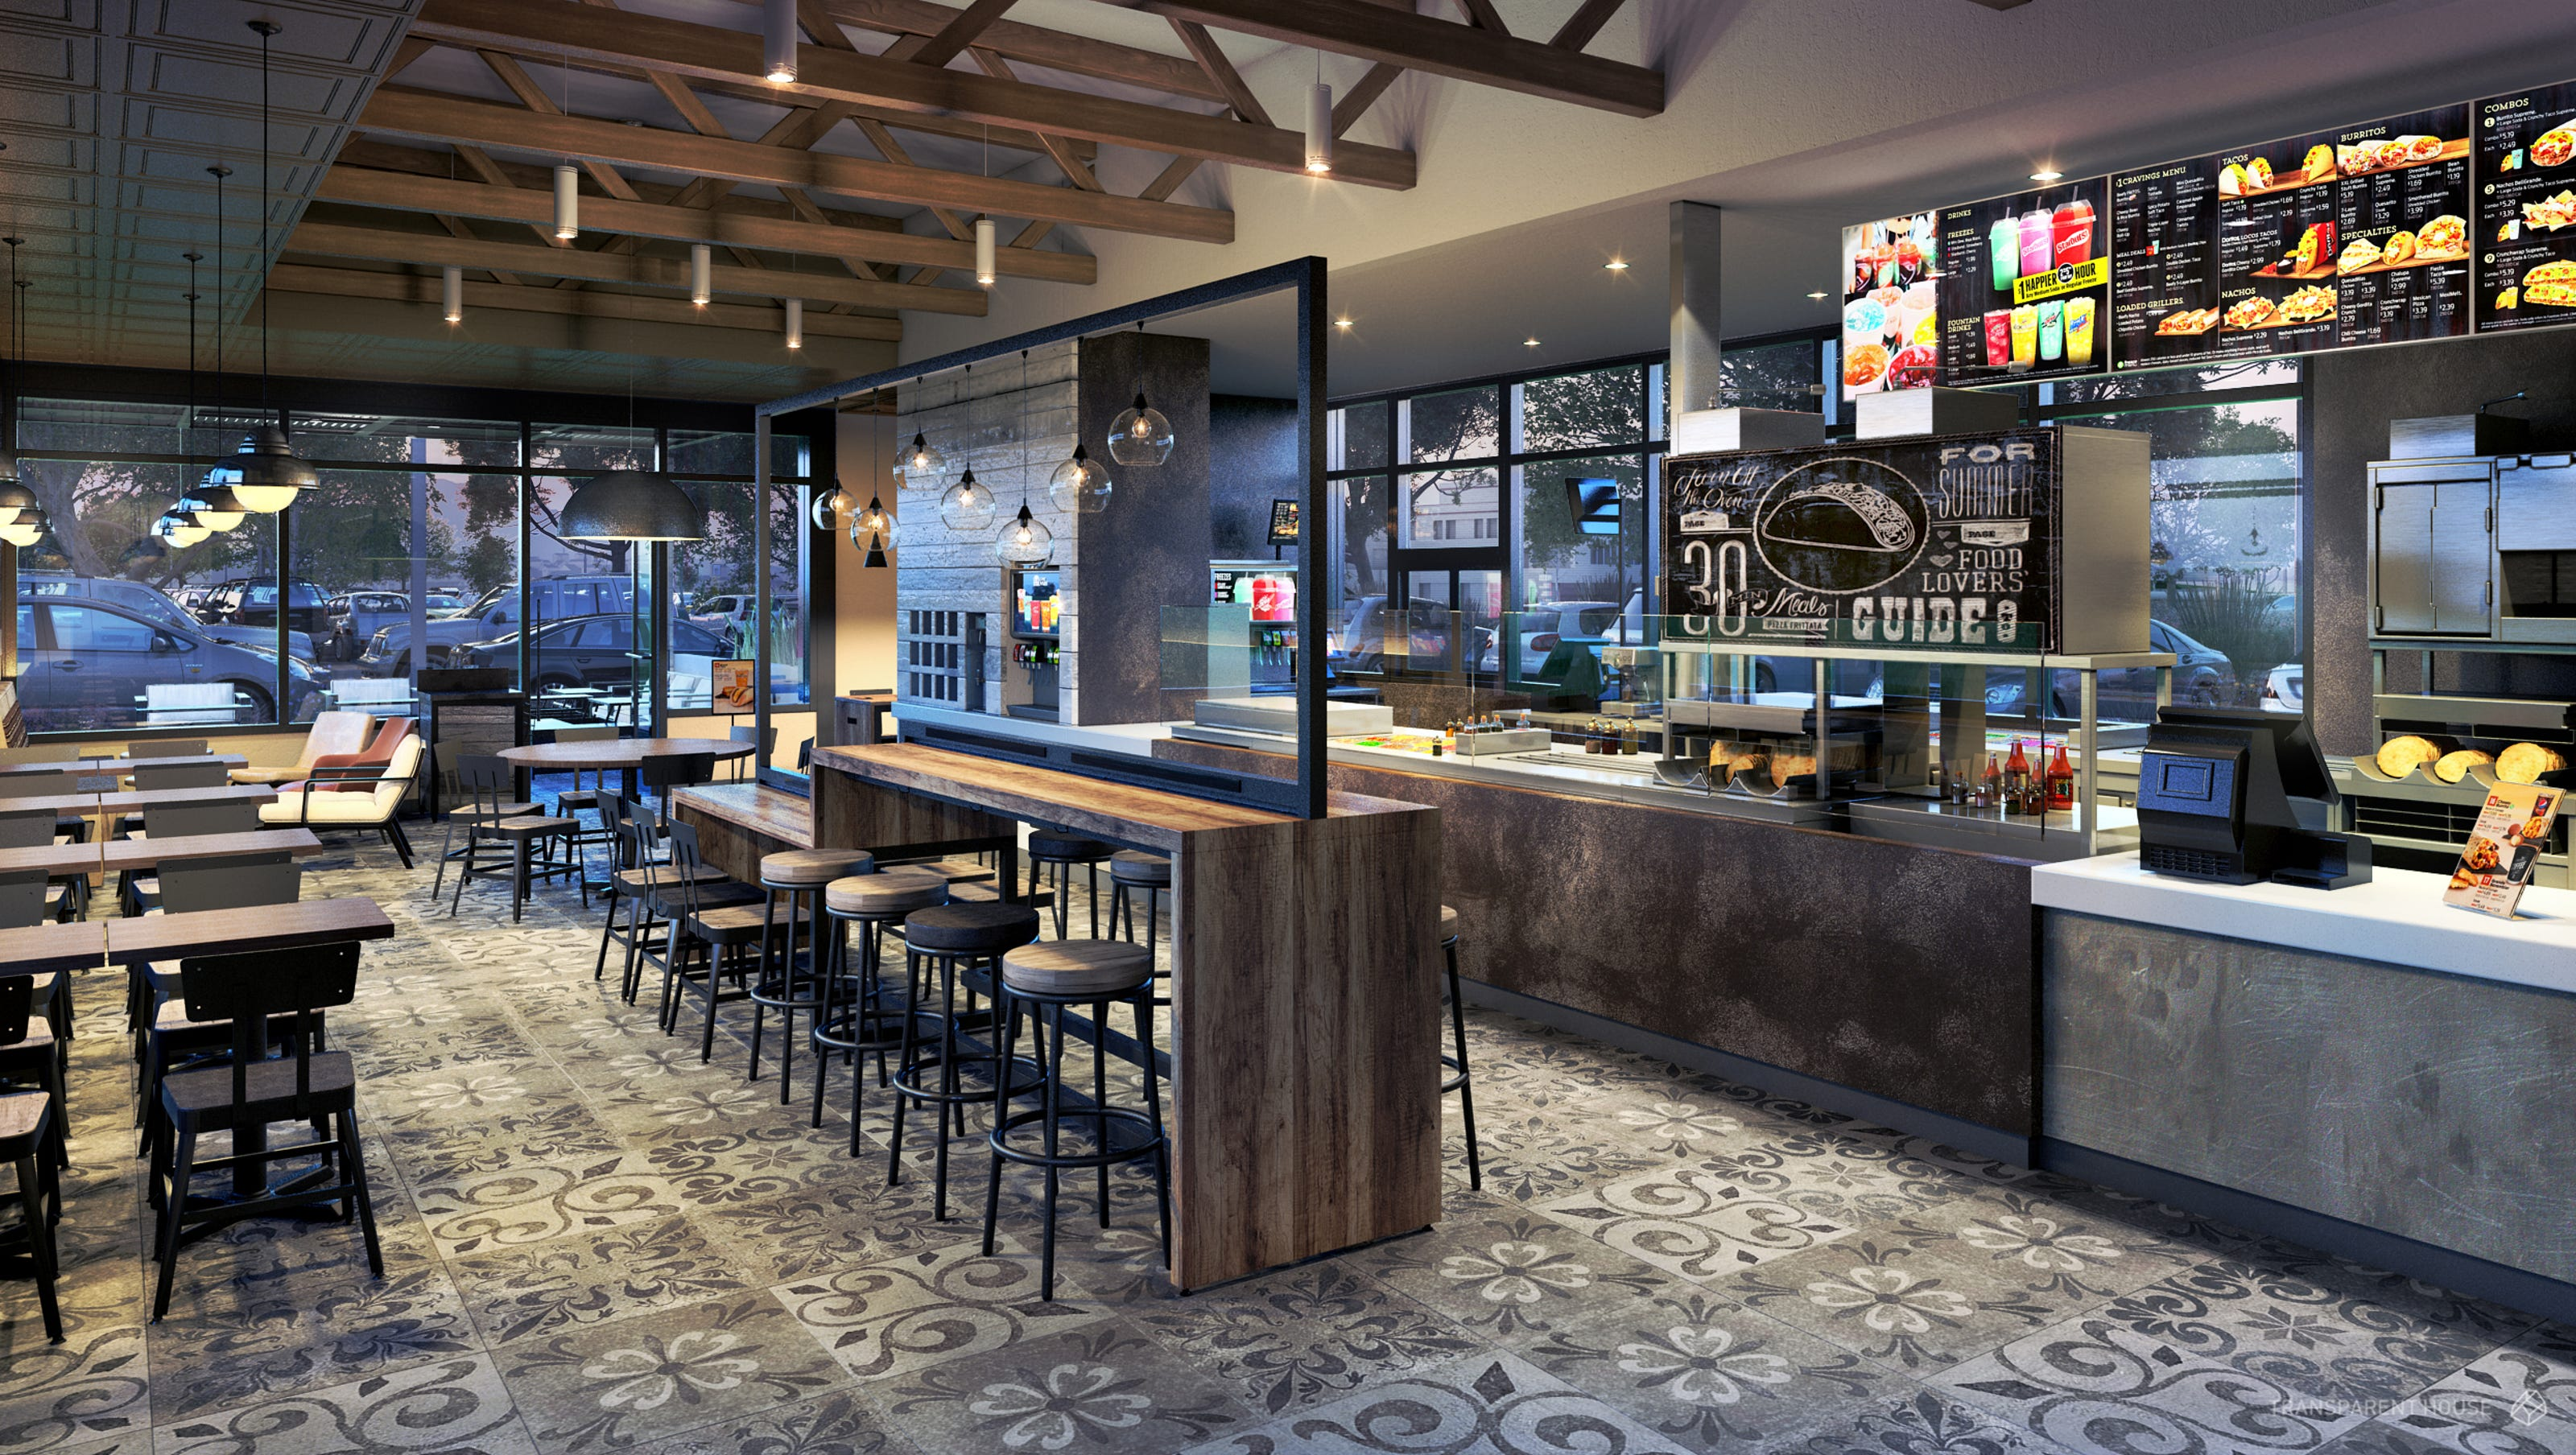 Warehouse Loft Floor Plans Taco Bell Tests Upscale Interiors To Boost Dinner Trade